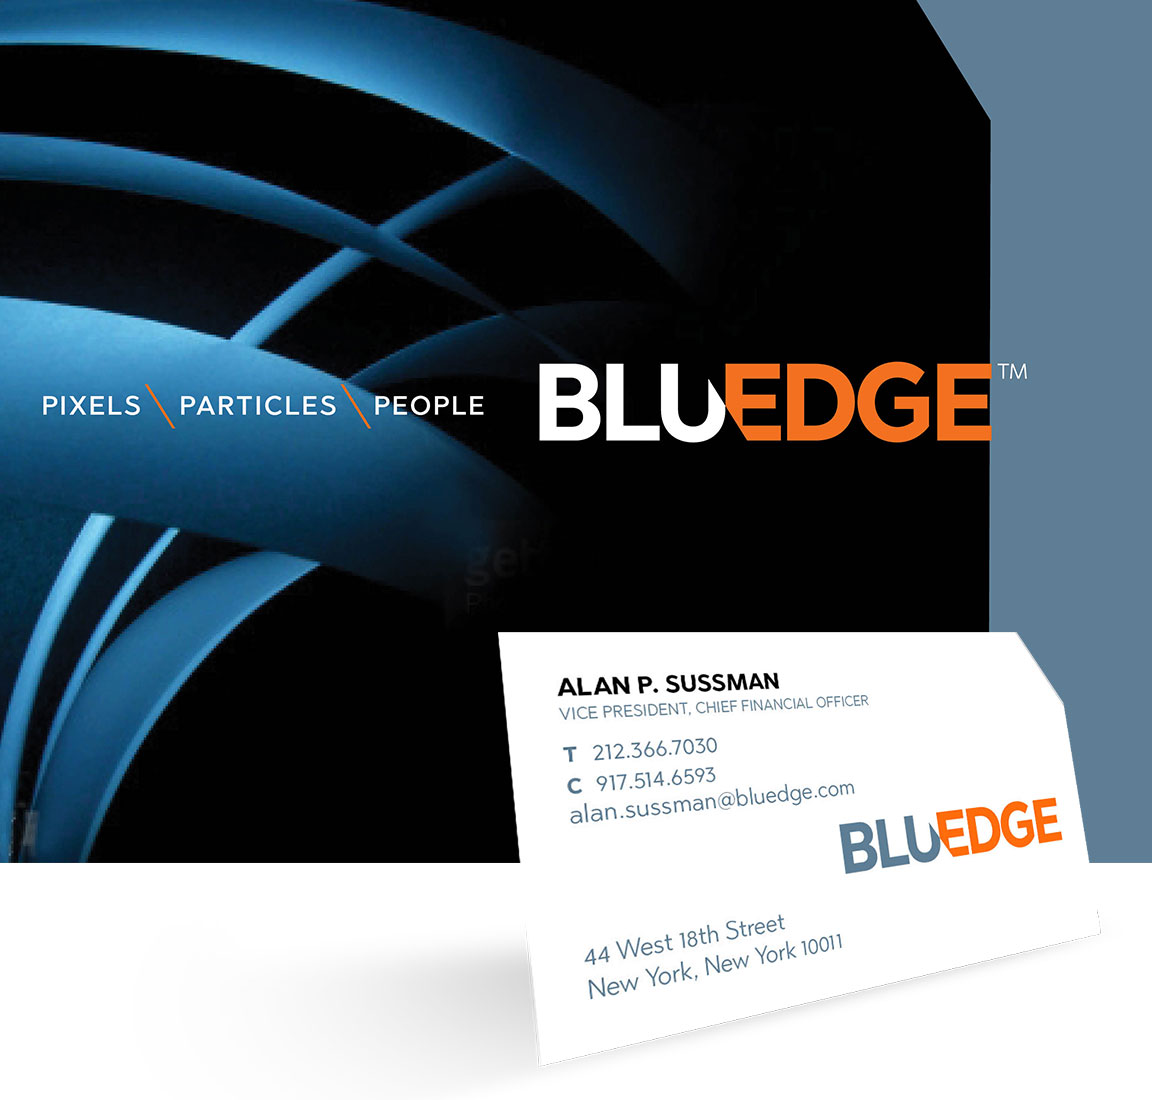 BluEdge company rebranding applied to a business card and PowerPoint cover page